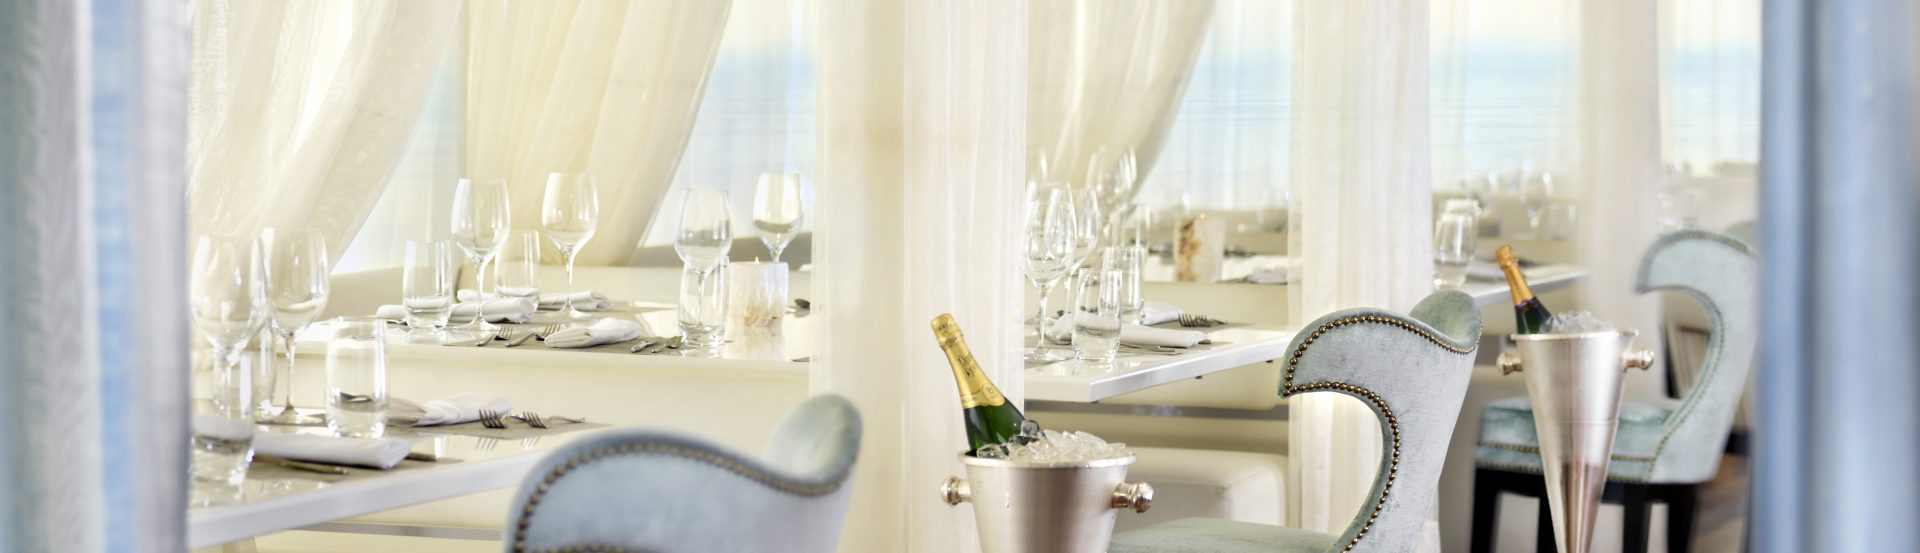 The Huntley Hotel ENJOY PACIFIC PANORAMAS, PERSONALIZED SERVICES, AND FINE DINING IN A VIBRANT...